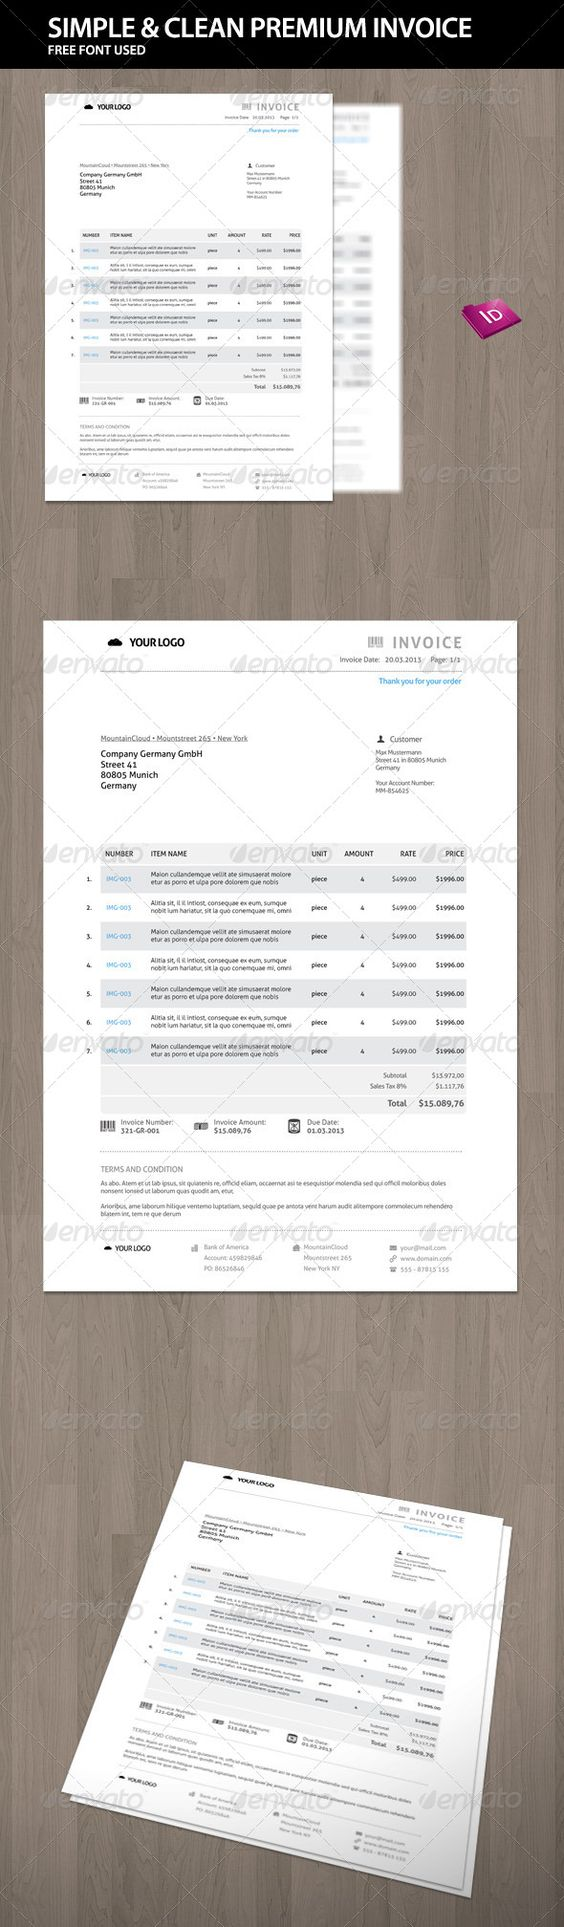 Download Free Service Invoice Template for Excel | Invoice | Pinterest